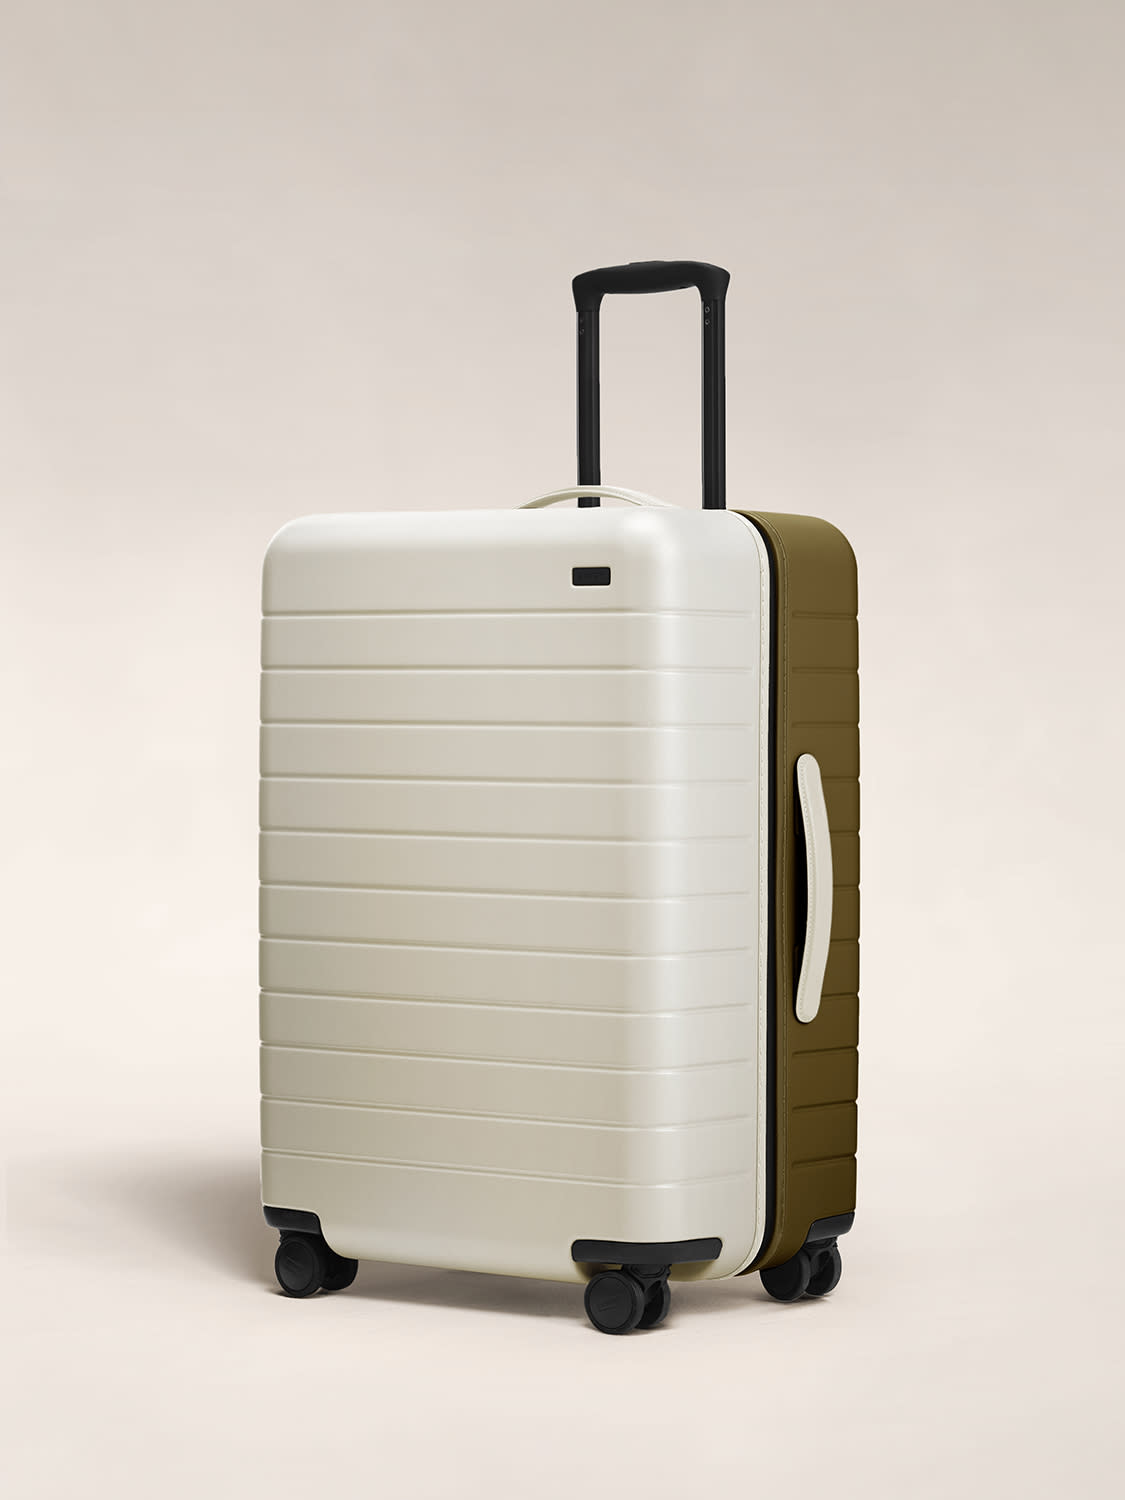 Angled view of the Medium hardside suitcase in Beige/olive